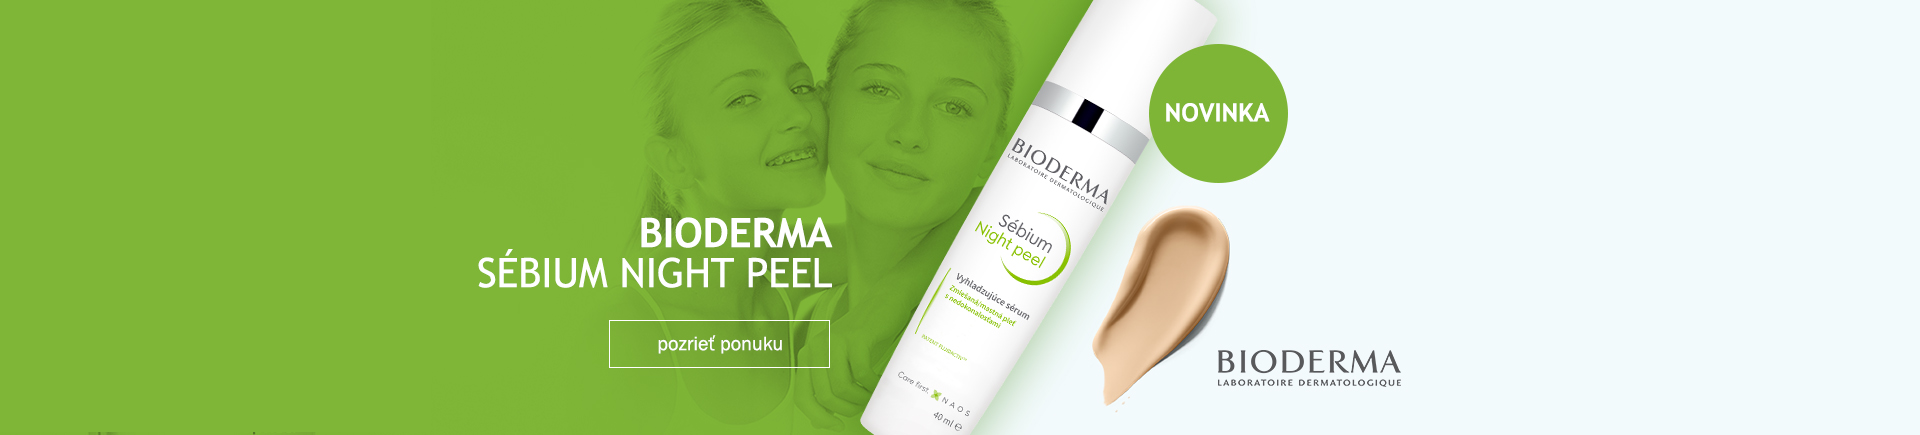 Bioderma Sebium Night Peel